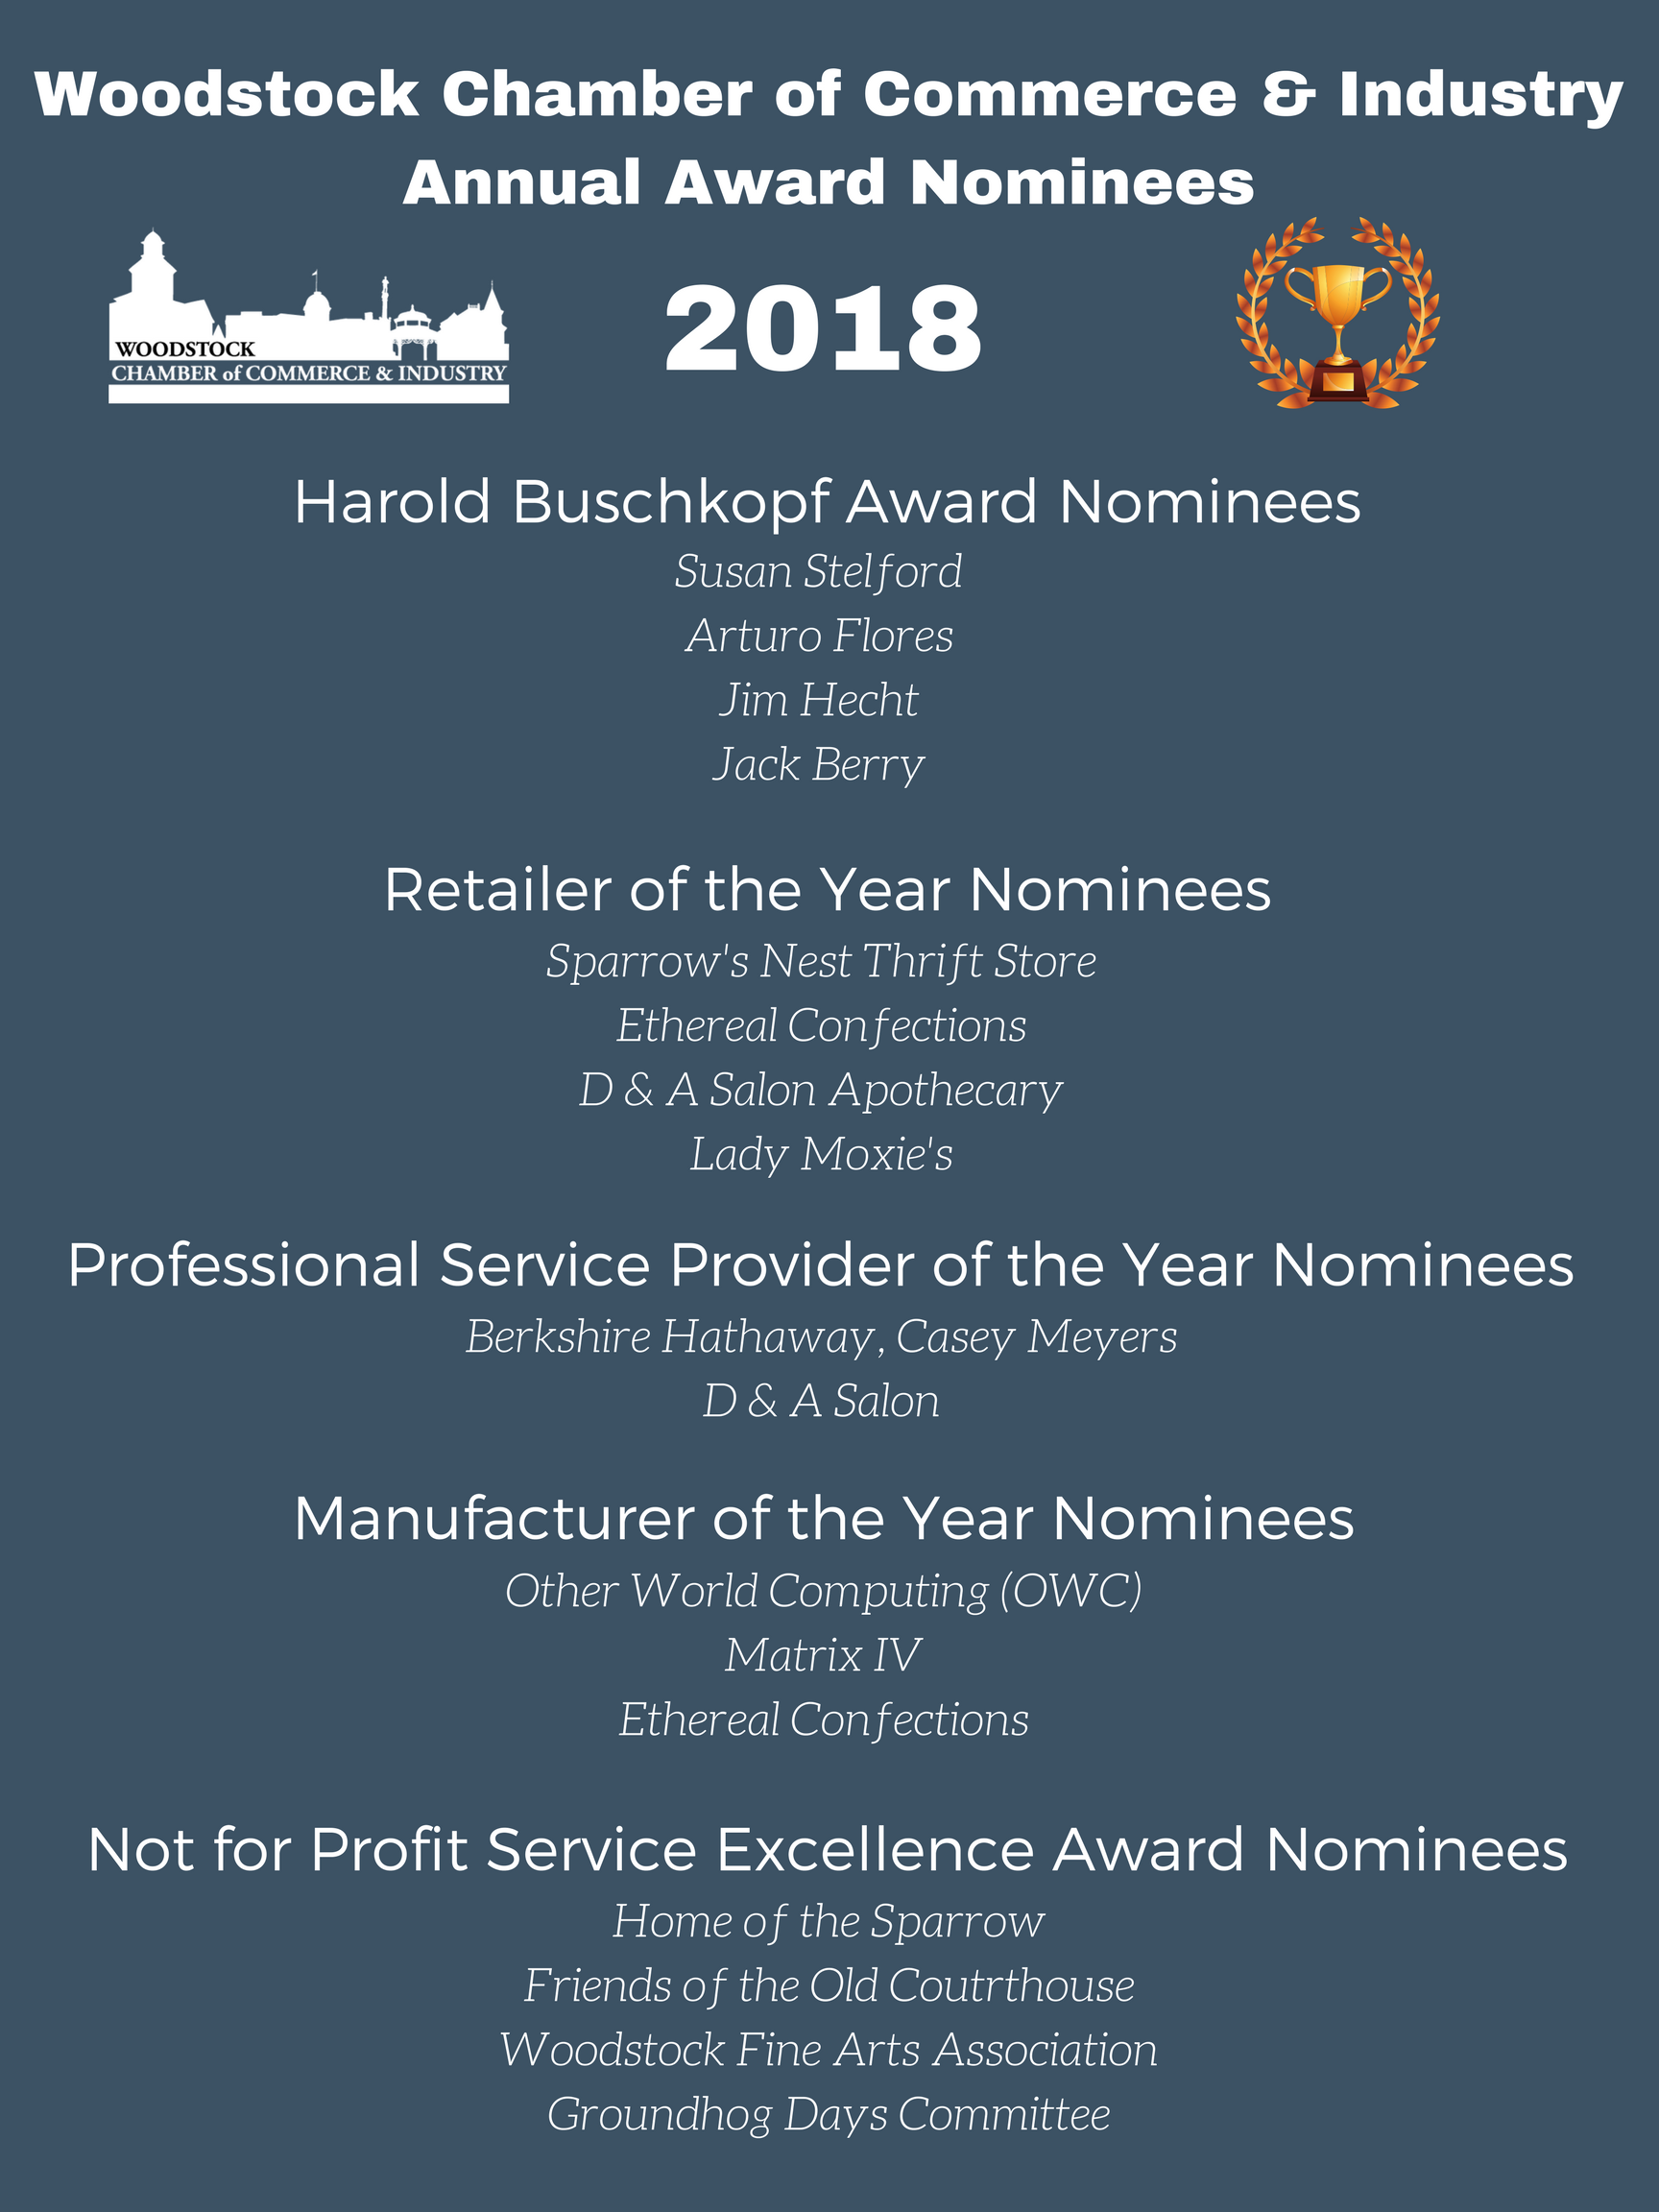 Woodstock-Chamber-of-Commerce-and-Industry2018-Award-Nominees.png